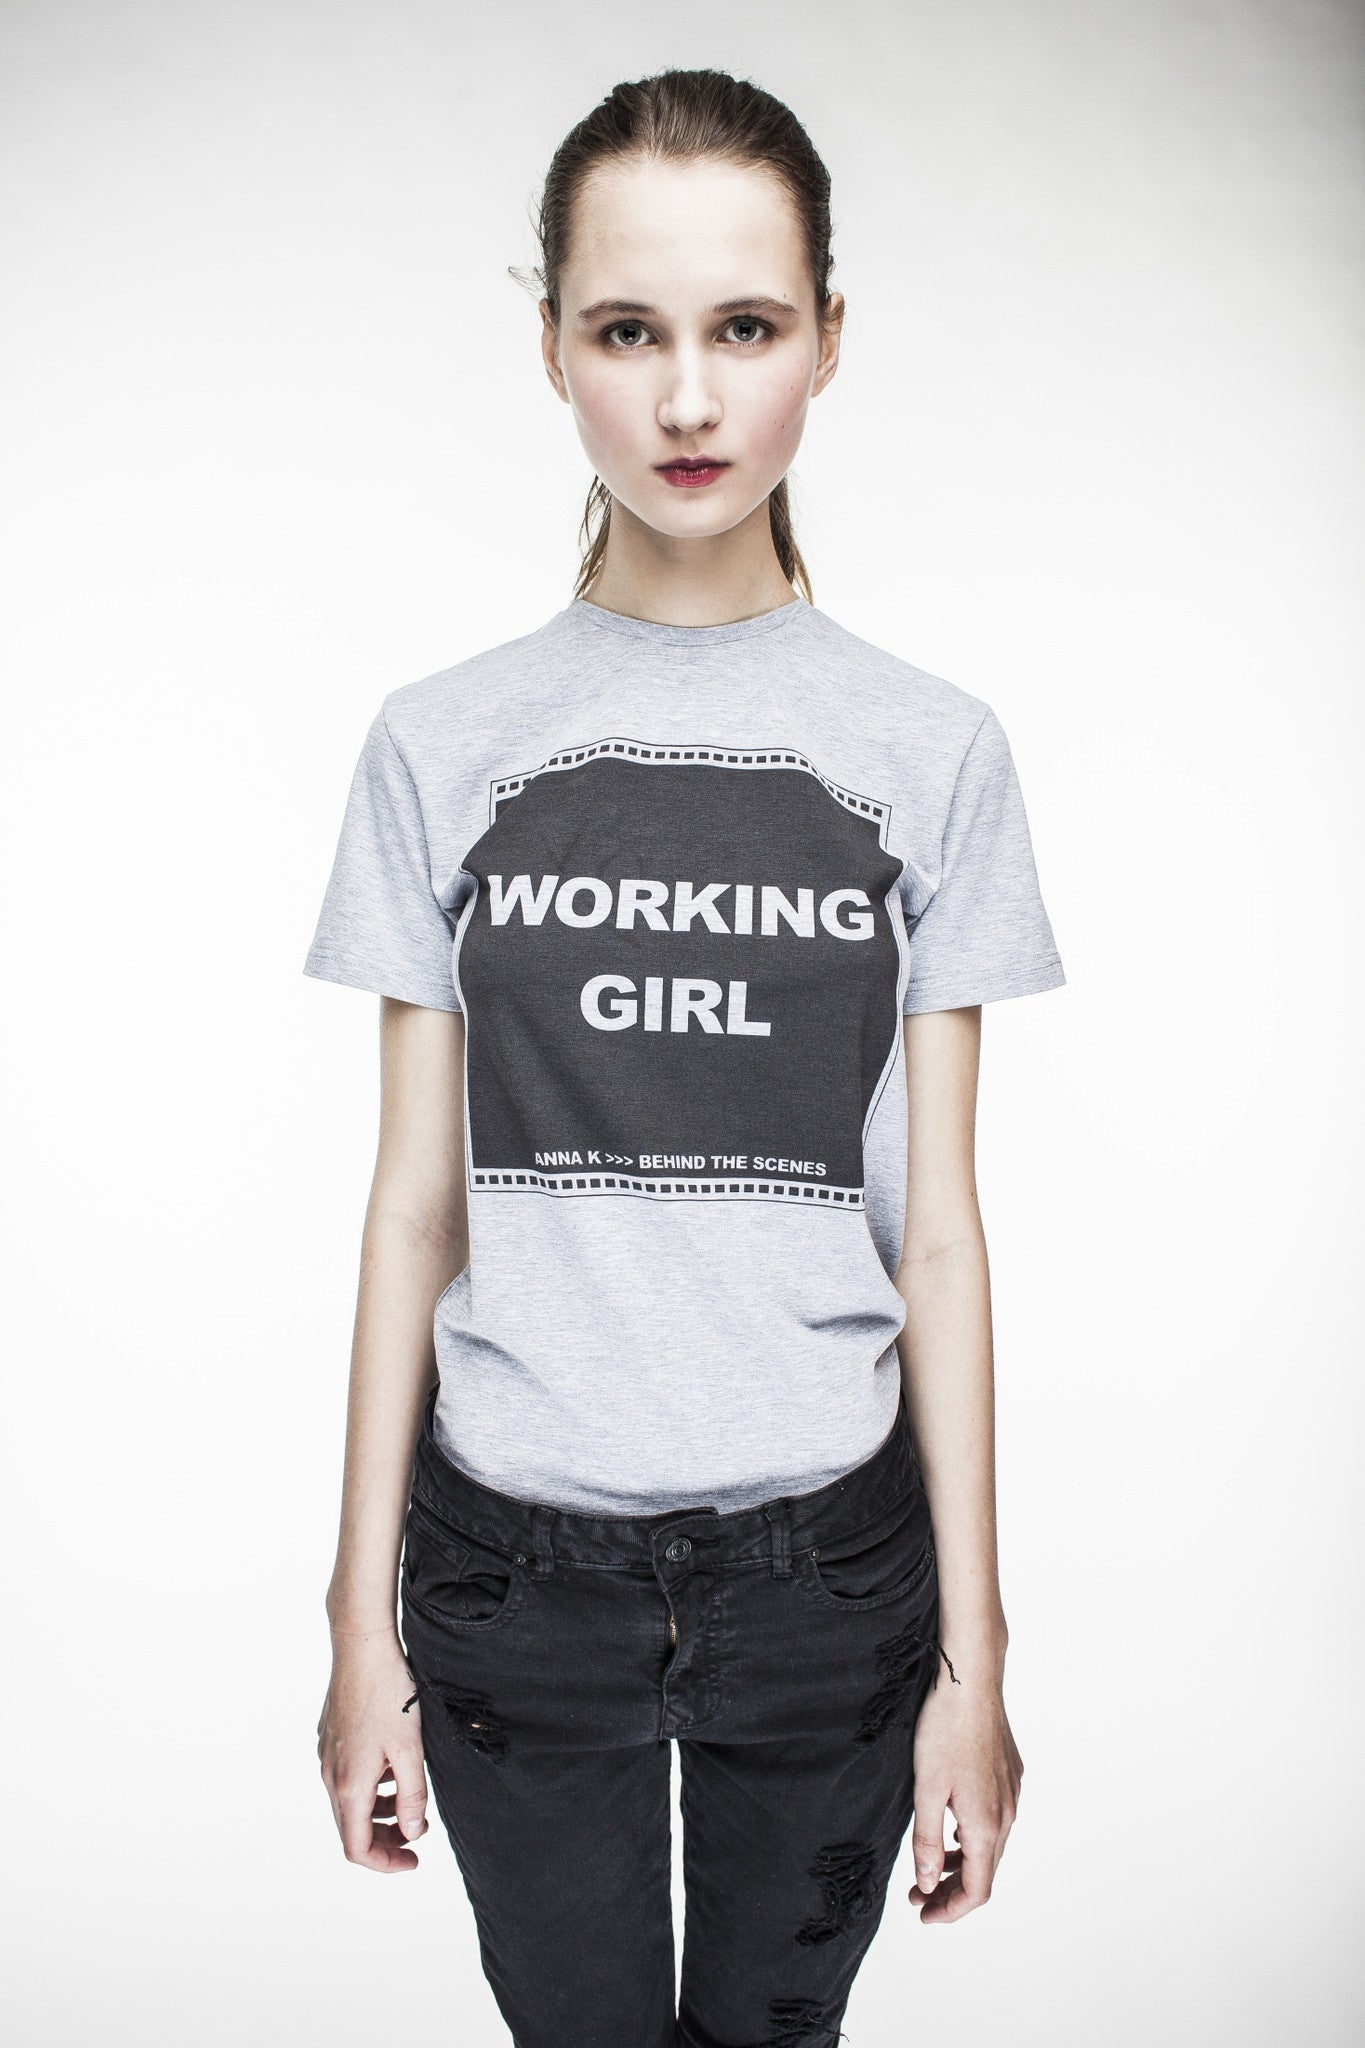 Working girl - Anna K  - 2